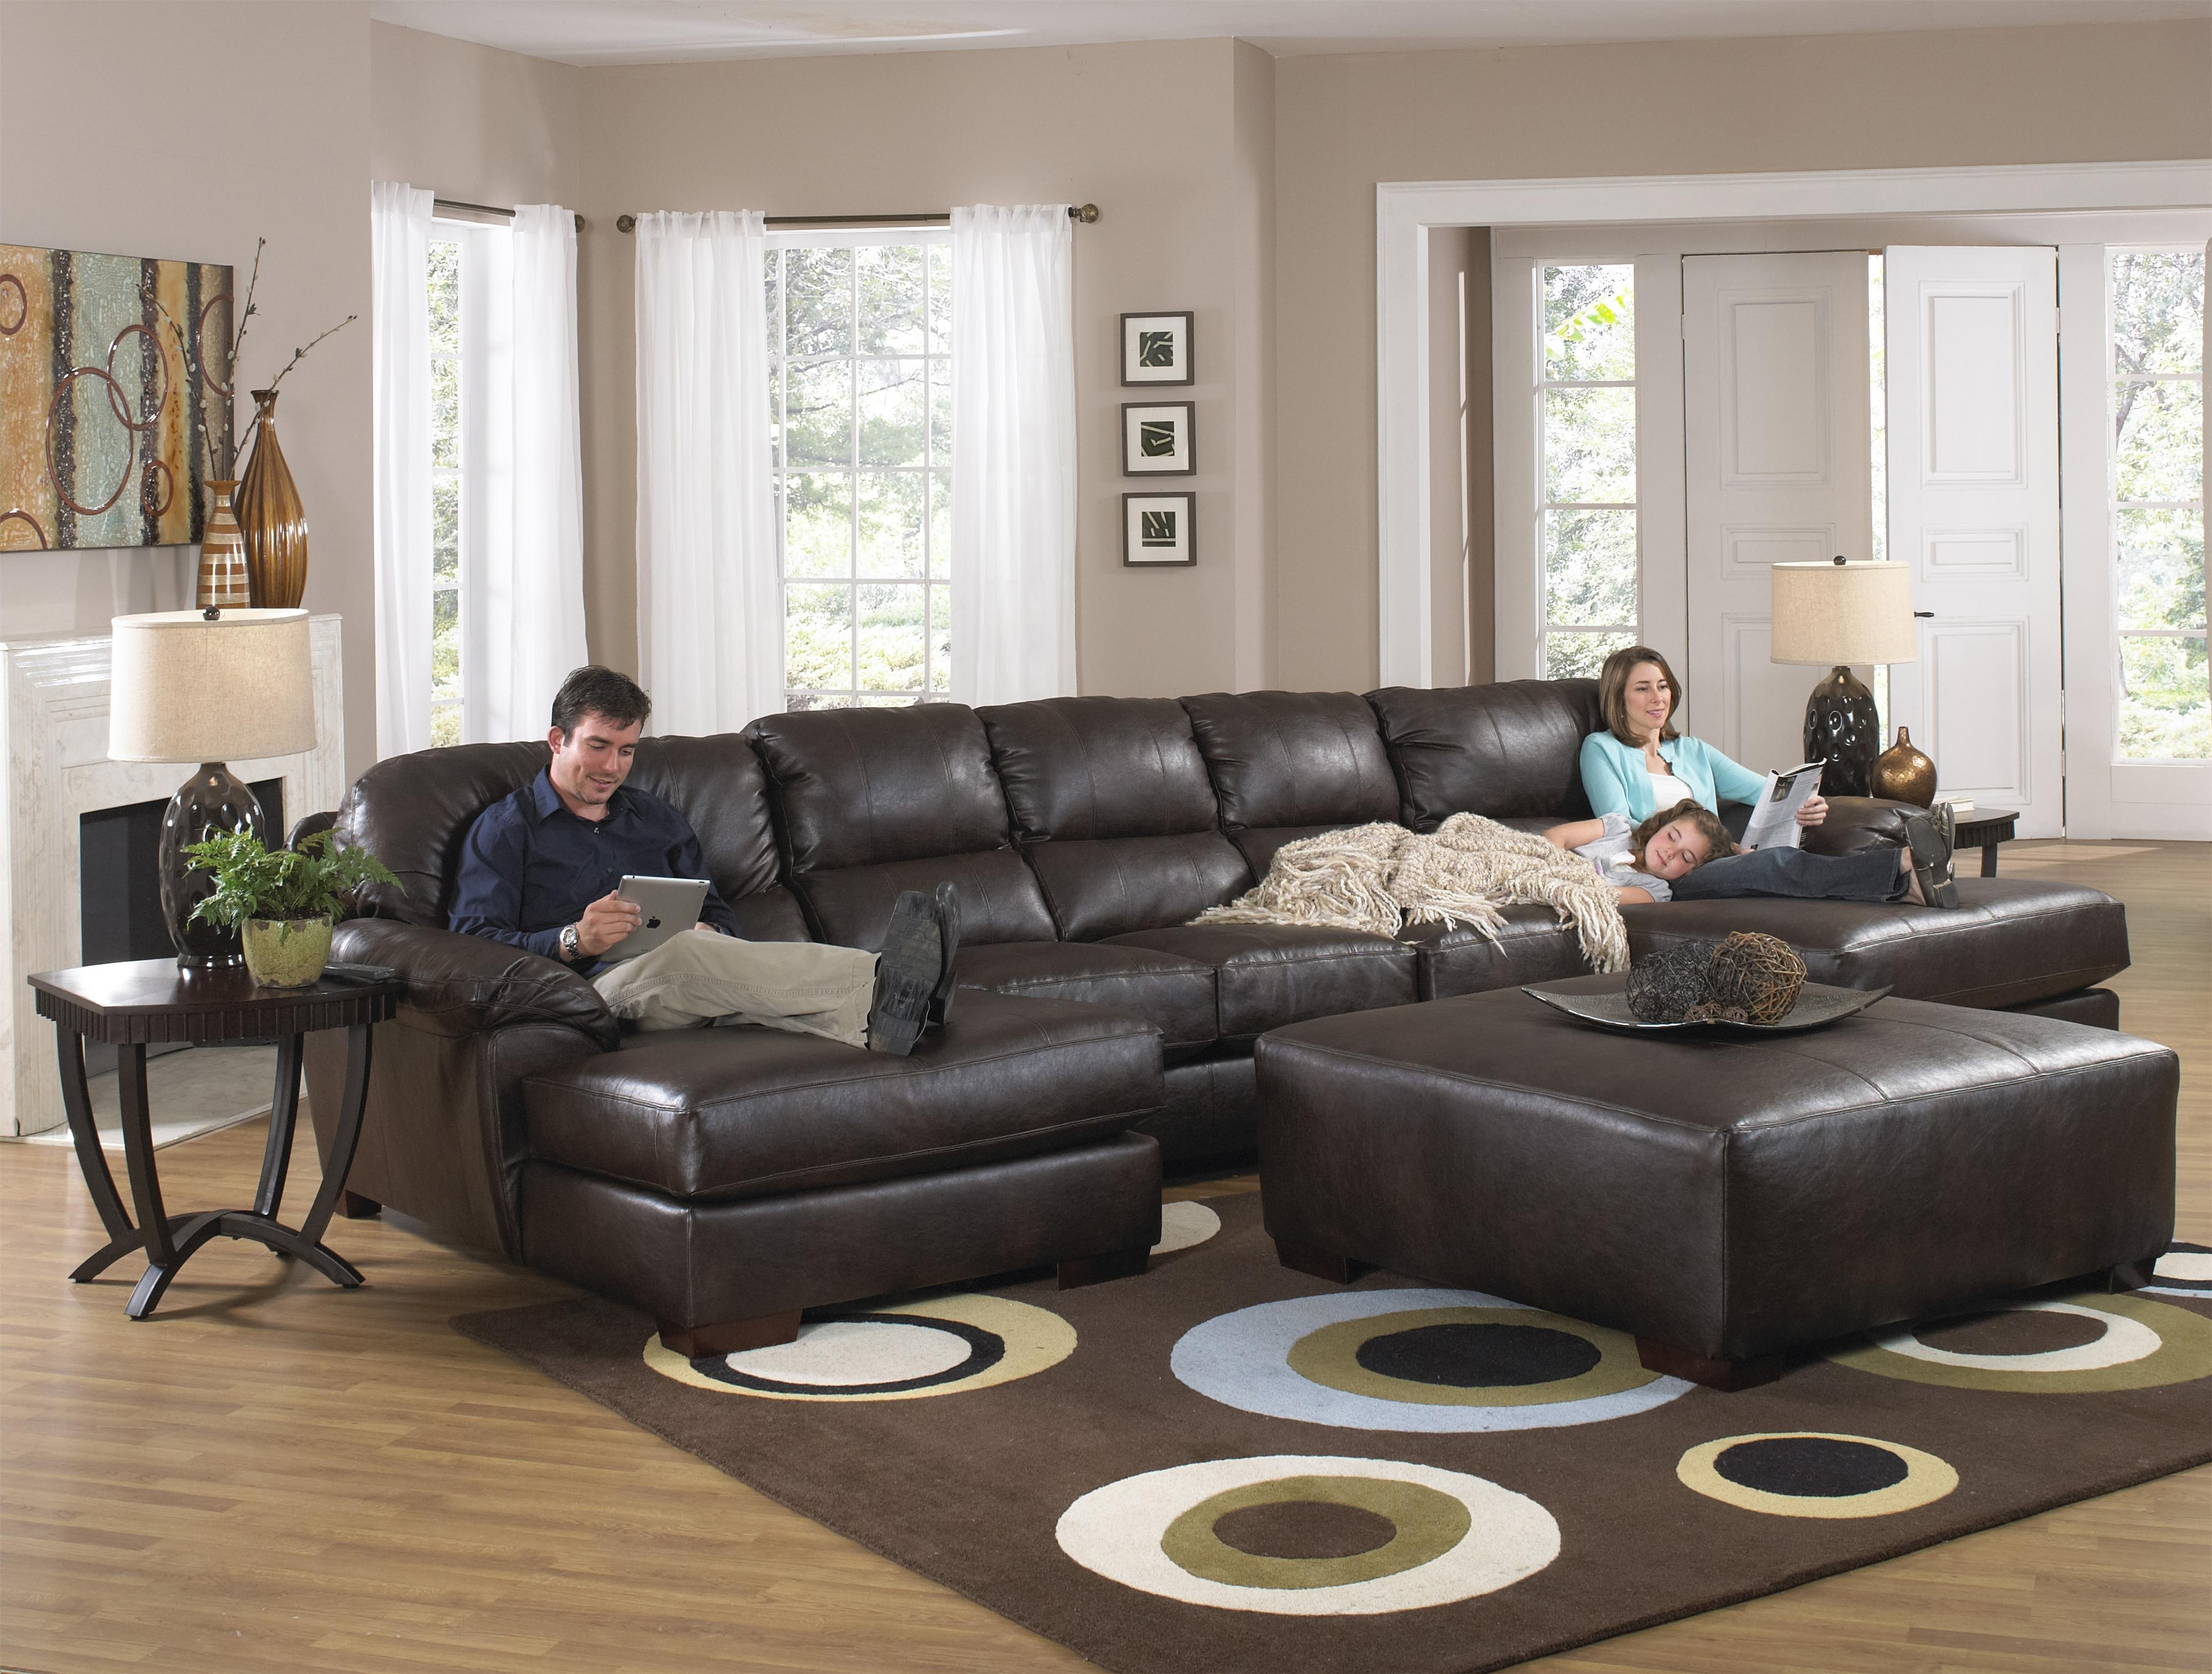 Small Sectional Sofas With Chaise And Ottoman Within Preferred Sofa : Beautiful Large Sectional Sofa With Chaise L Shaped Cream (View 2 of 15)